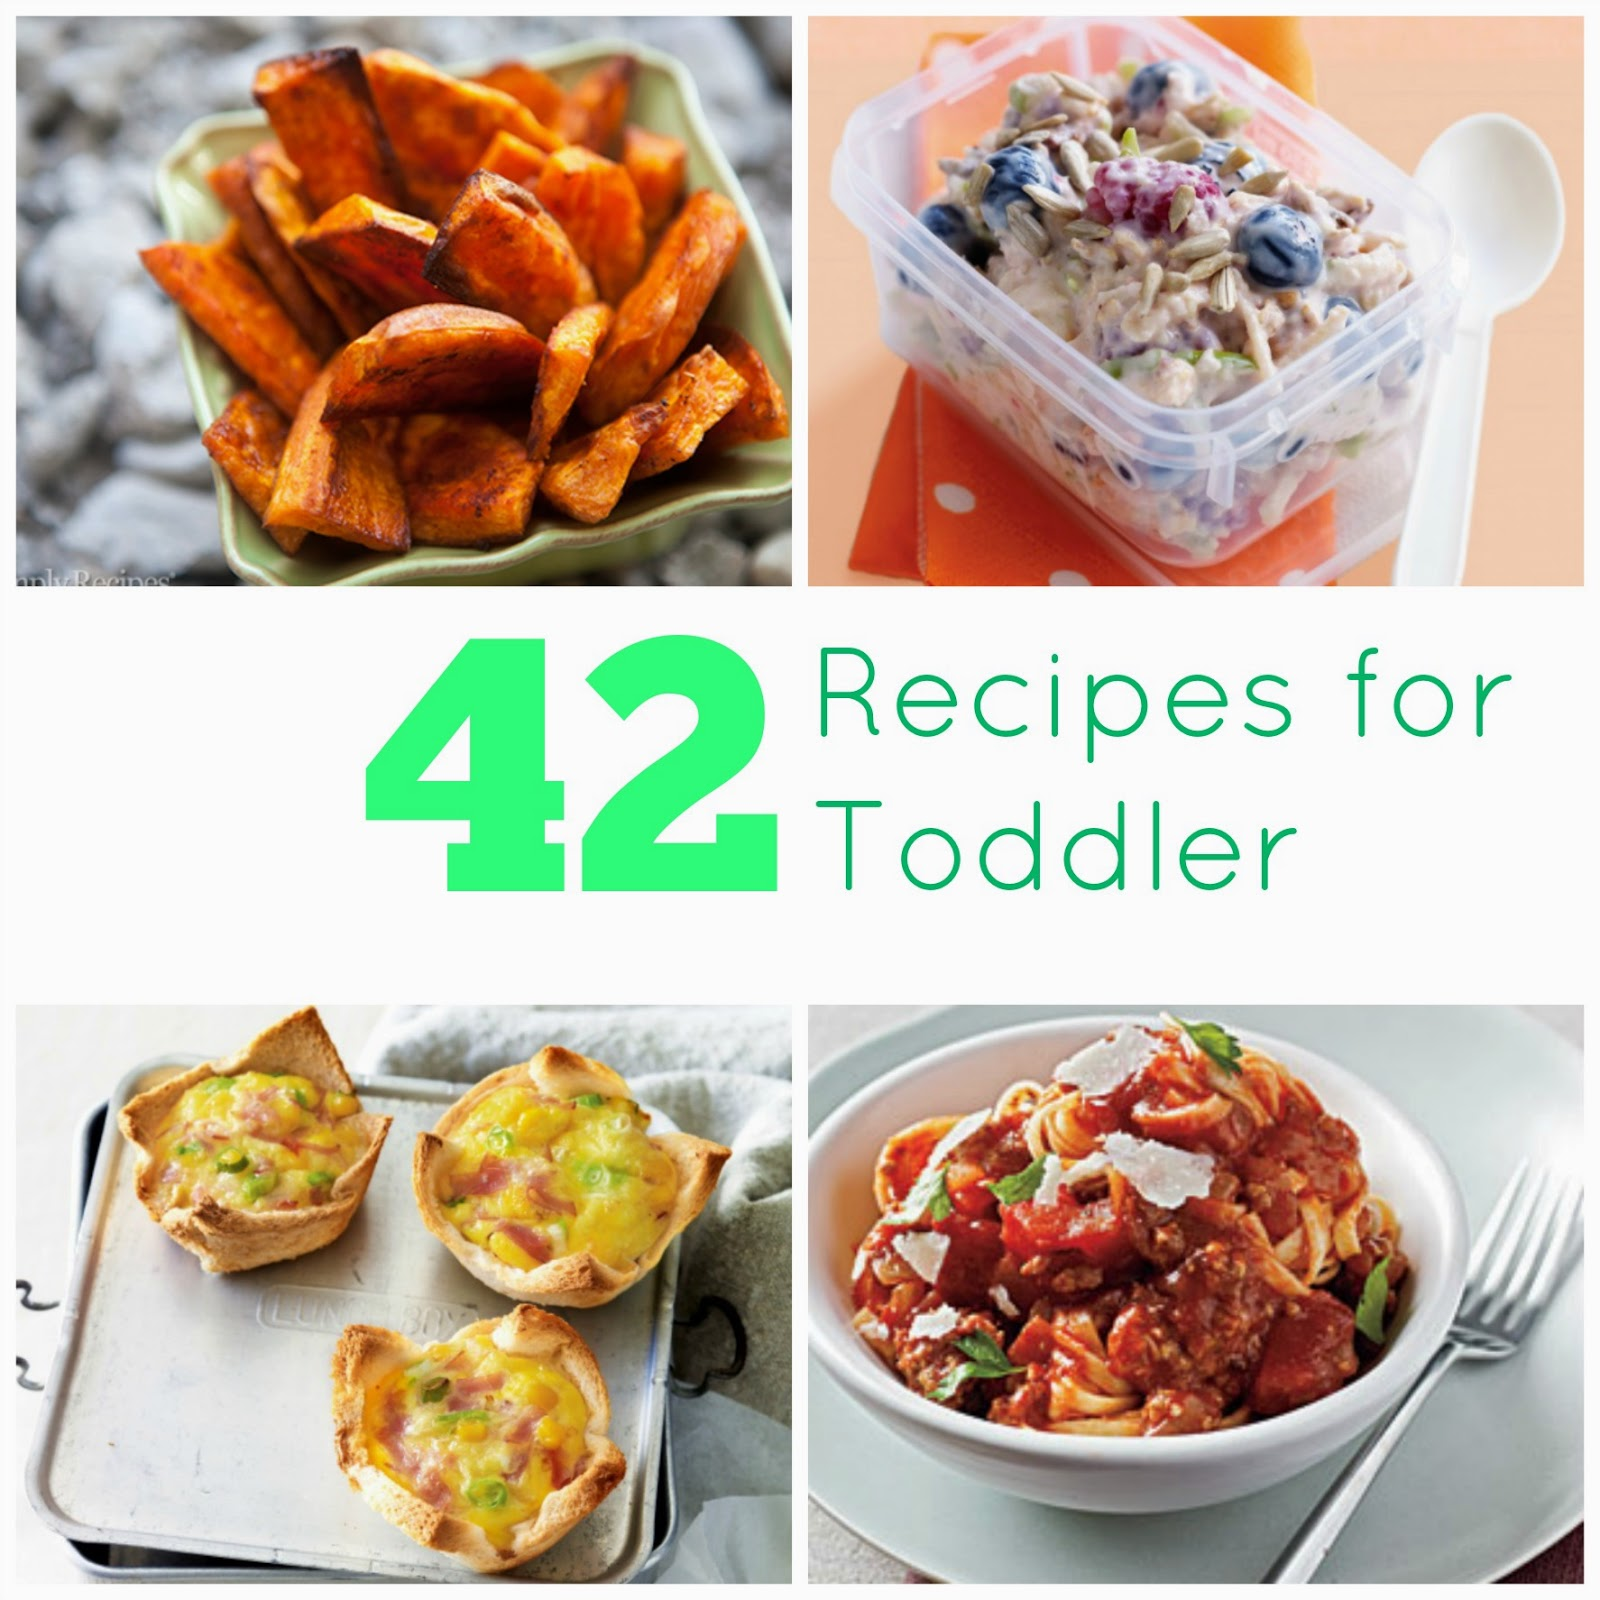 42 recipes for toddler the chill mom ive also included some yummy vegetable recipes and a list of freezer friendly meals that you can make in advance forumfinder Gallery